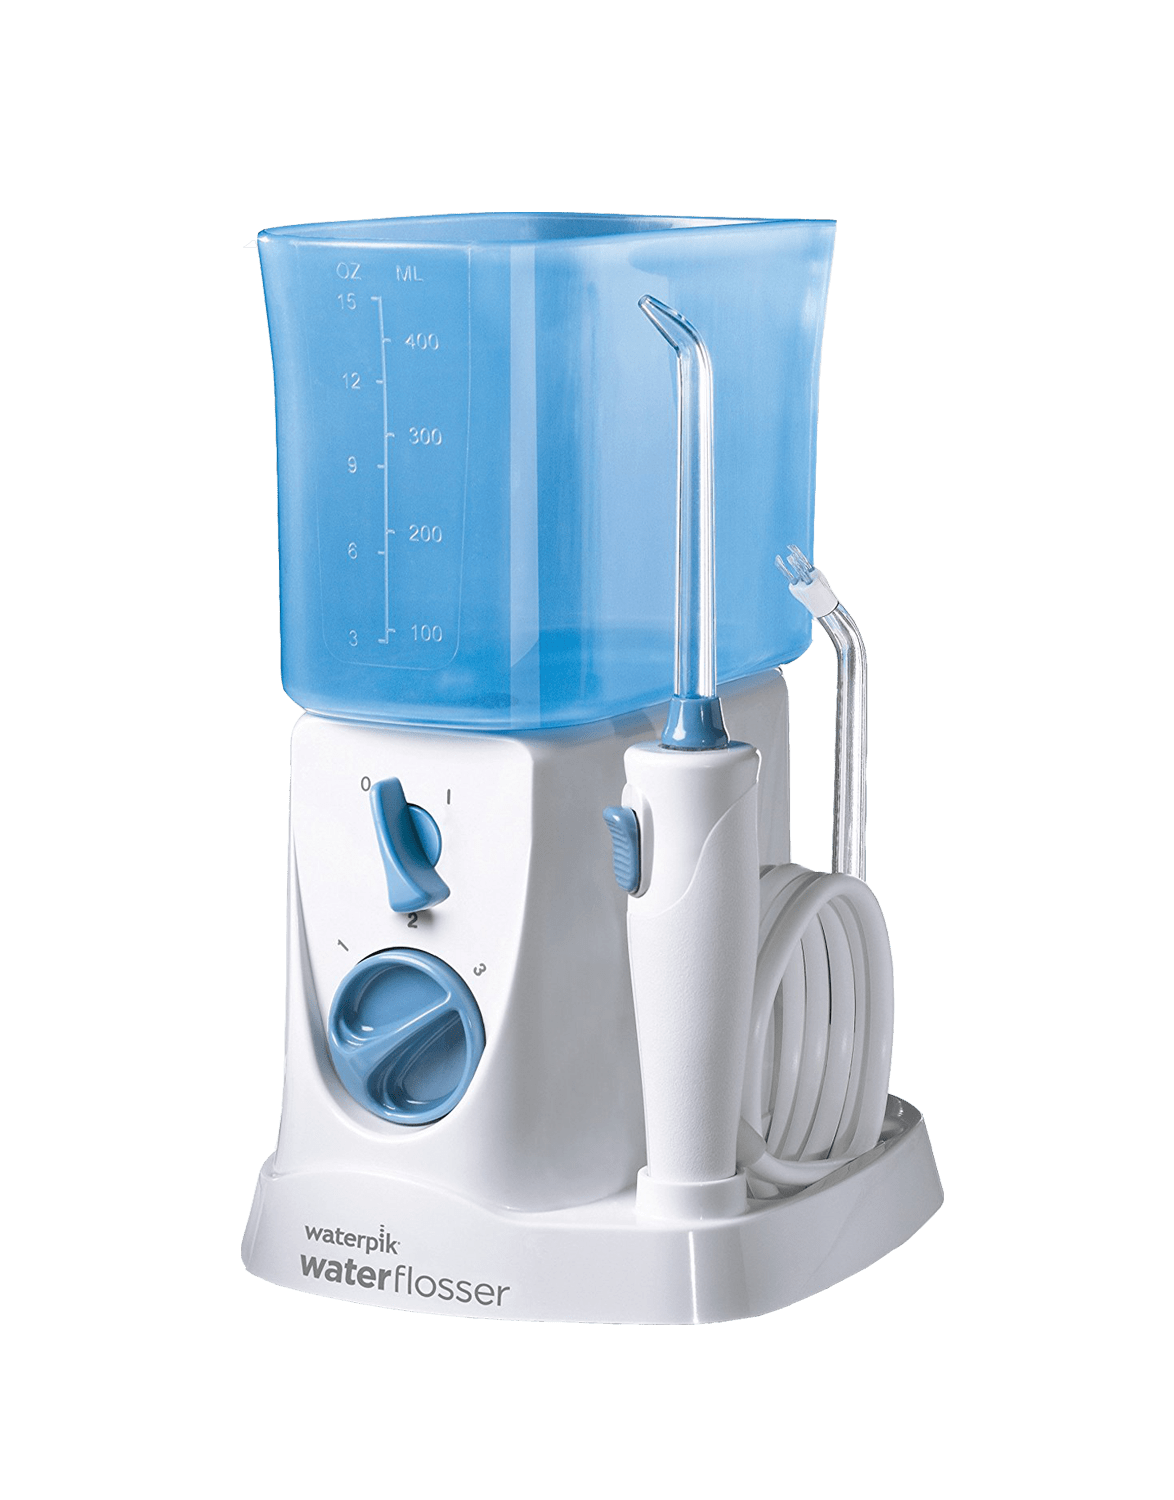 https://waterpik.vn/wp-content/uploads/2016/04/may-tam-nuoc-waterpik-nano-small.png